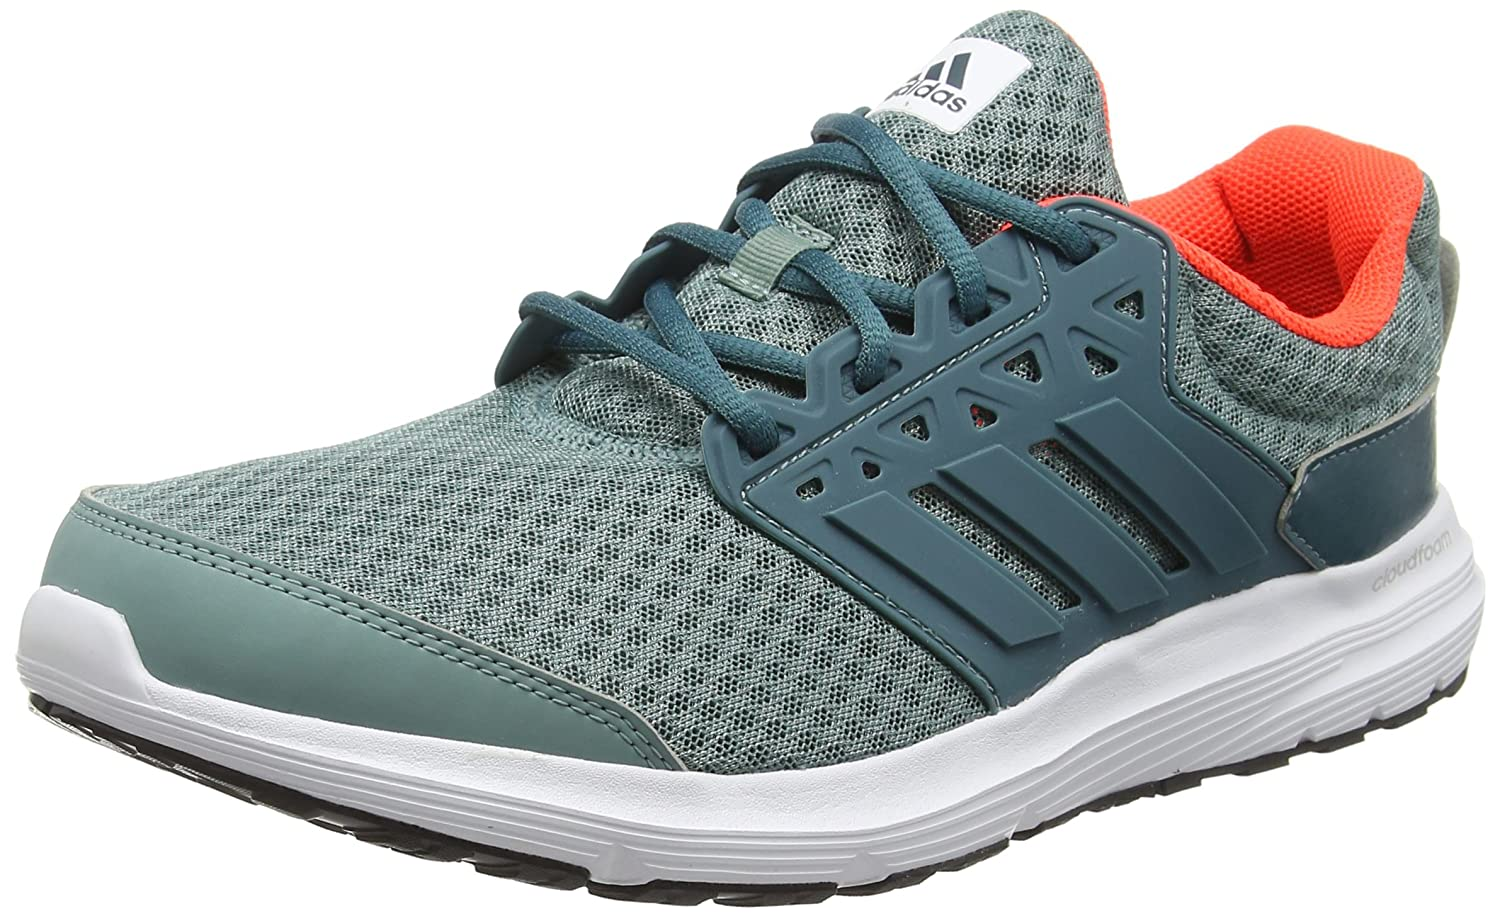 Shoes Outlet  MENS AUTHENTIC ADIDAS KNITTED TRAINING TECHNOLOGY TRAINERS SPORTS RUNNING SHOES